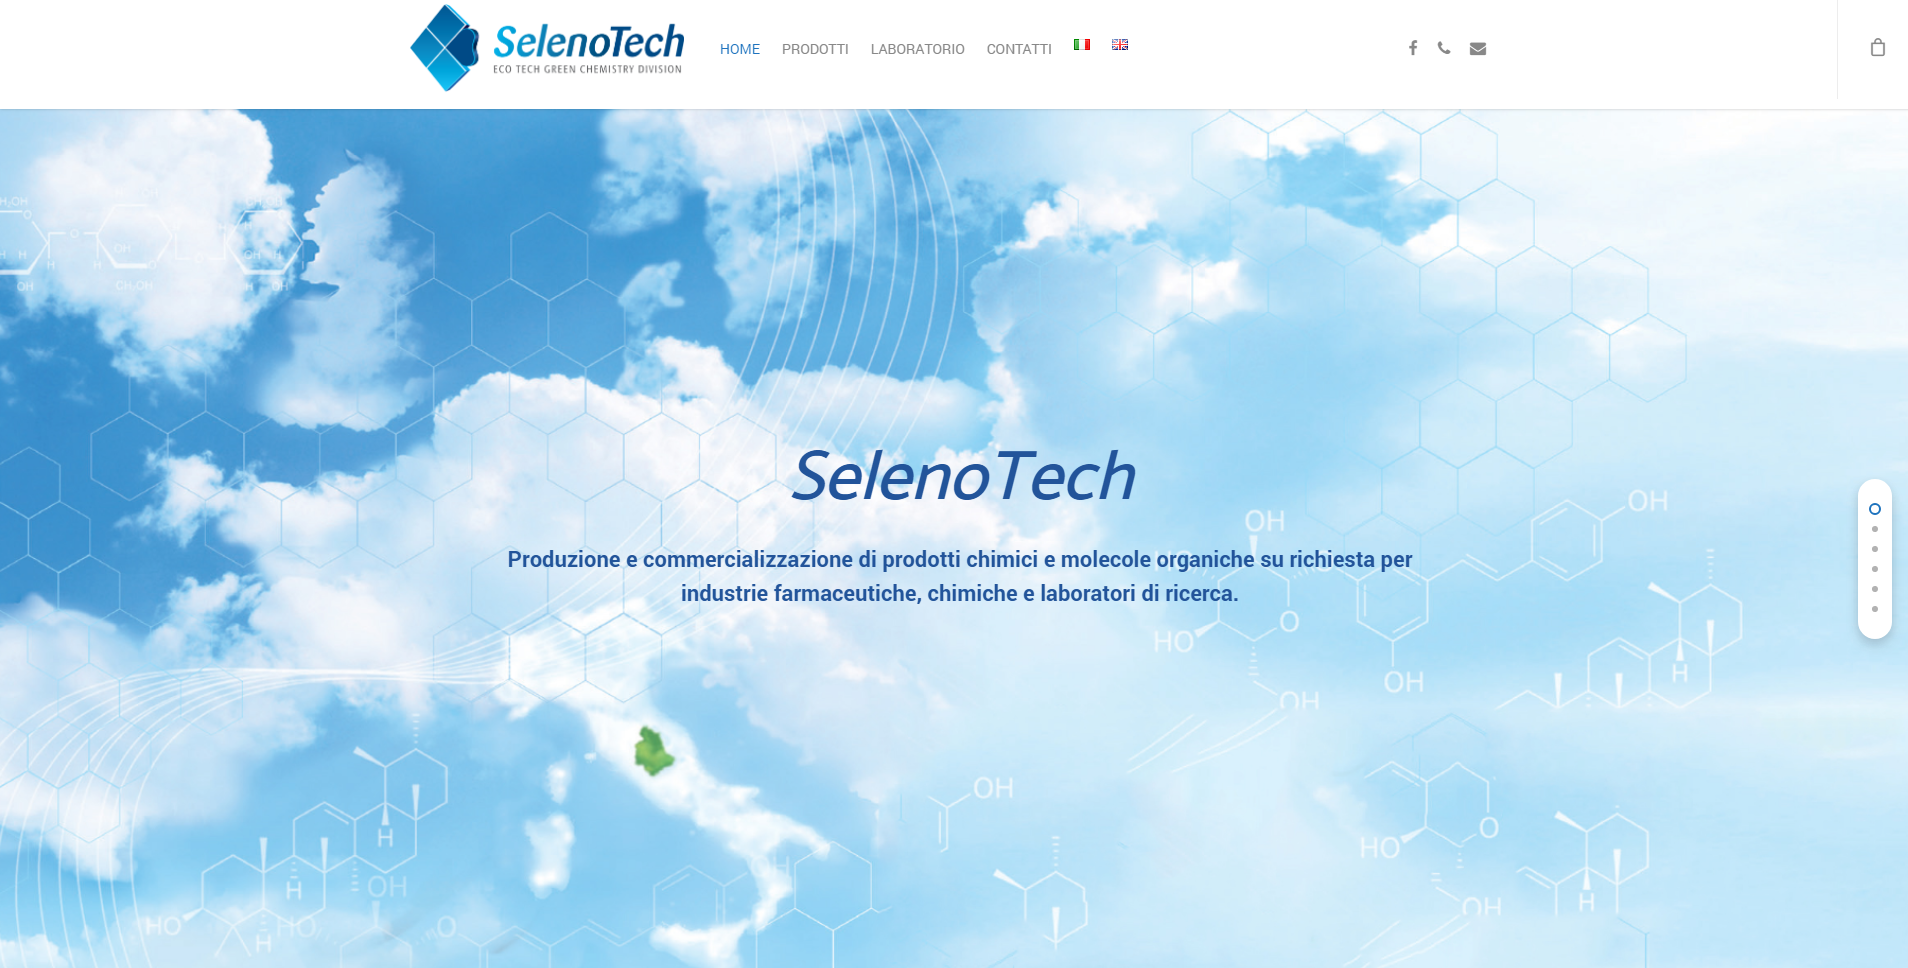 SITO WEB E-COMMERCE SELENOTECH